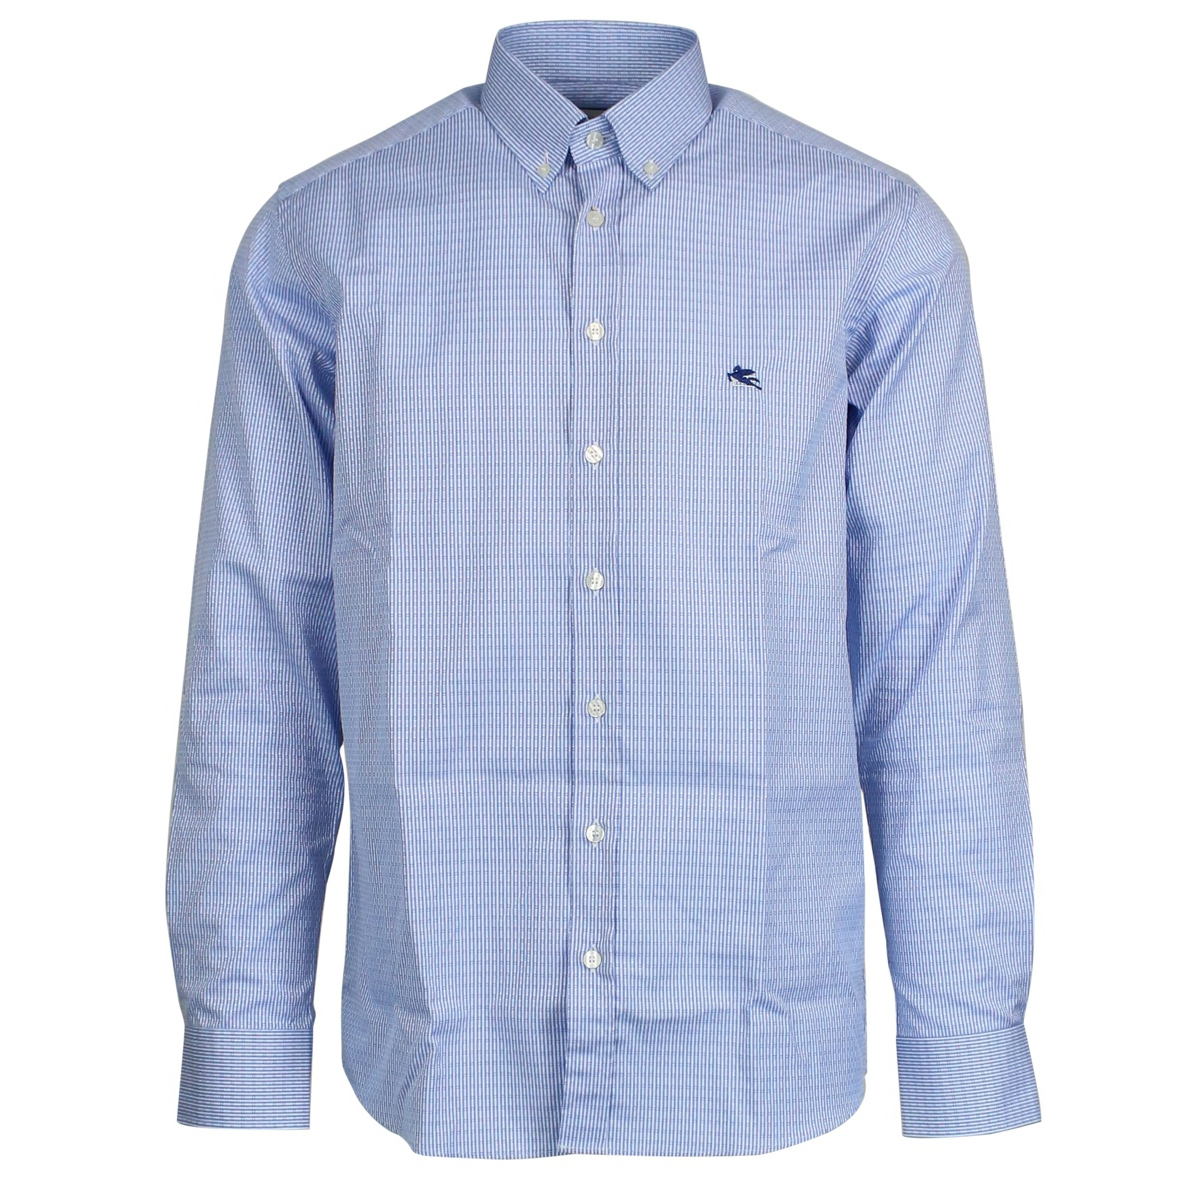 finest selection 158bf 743ae Camicia regular fit con logo